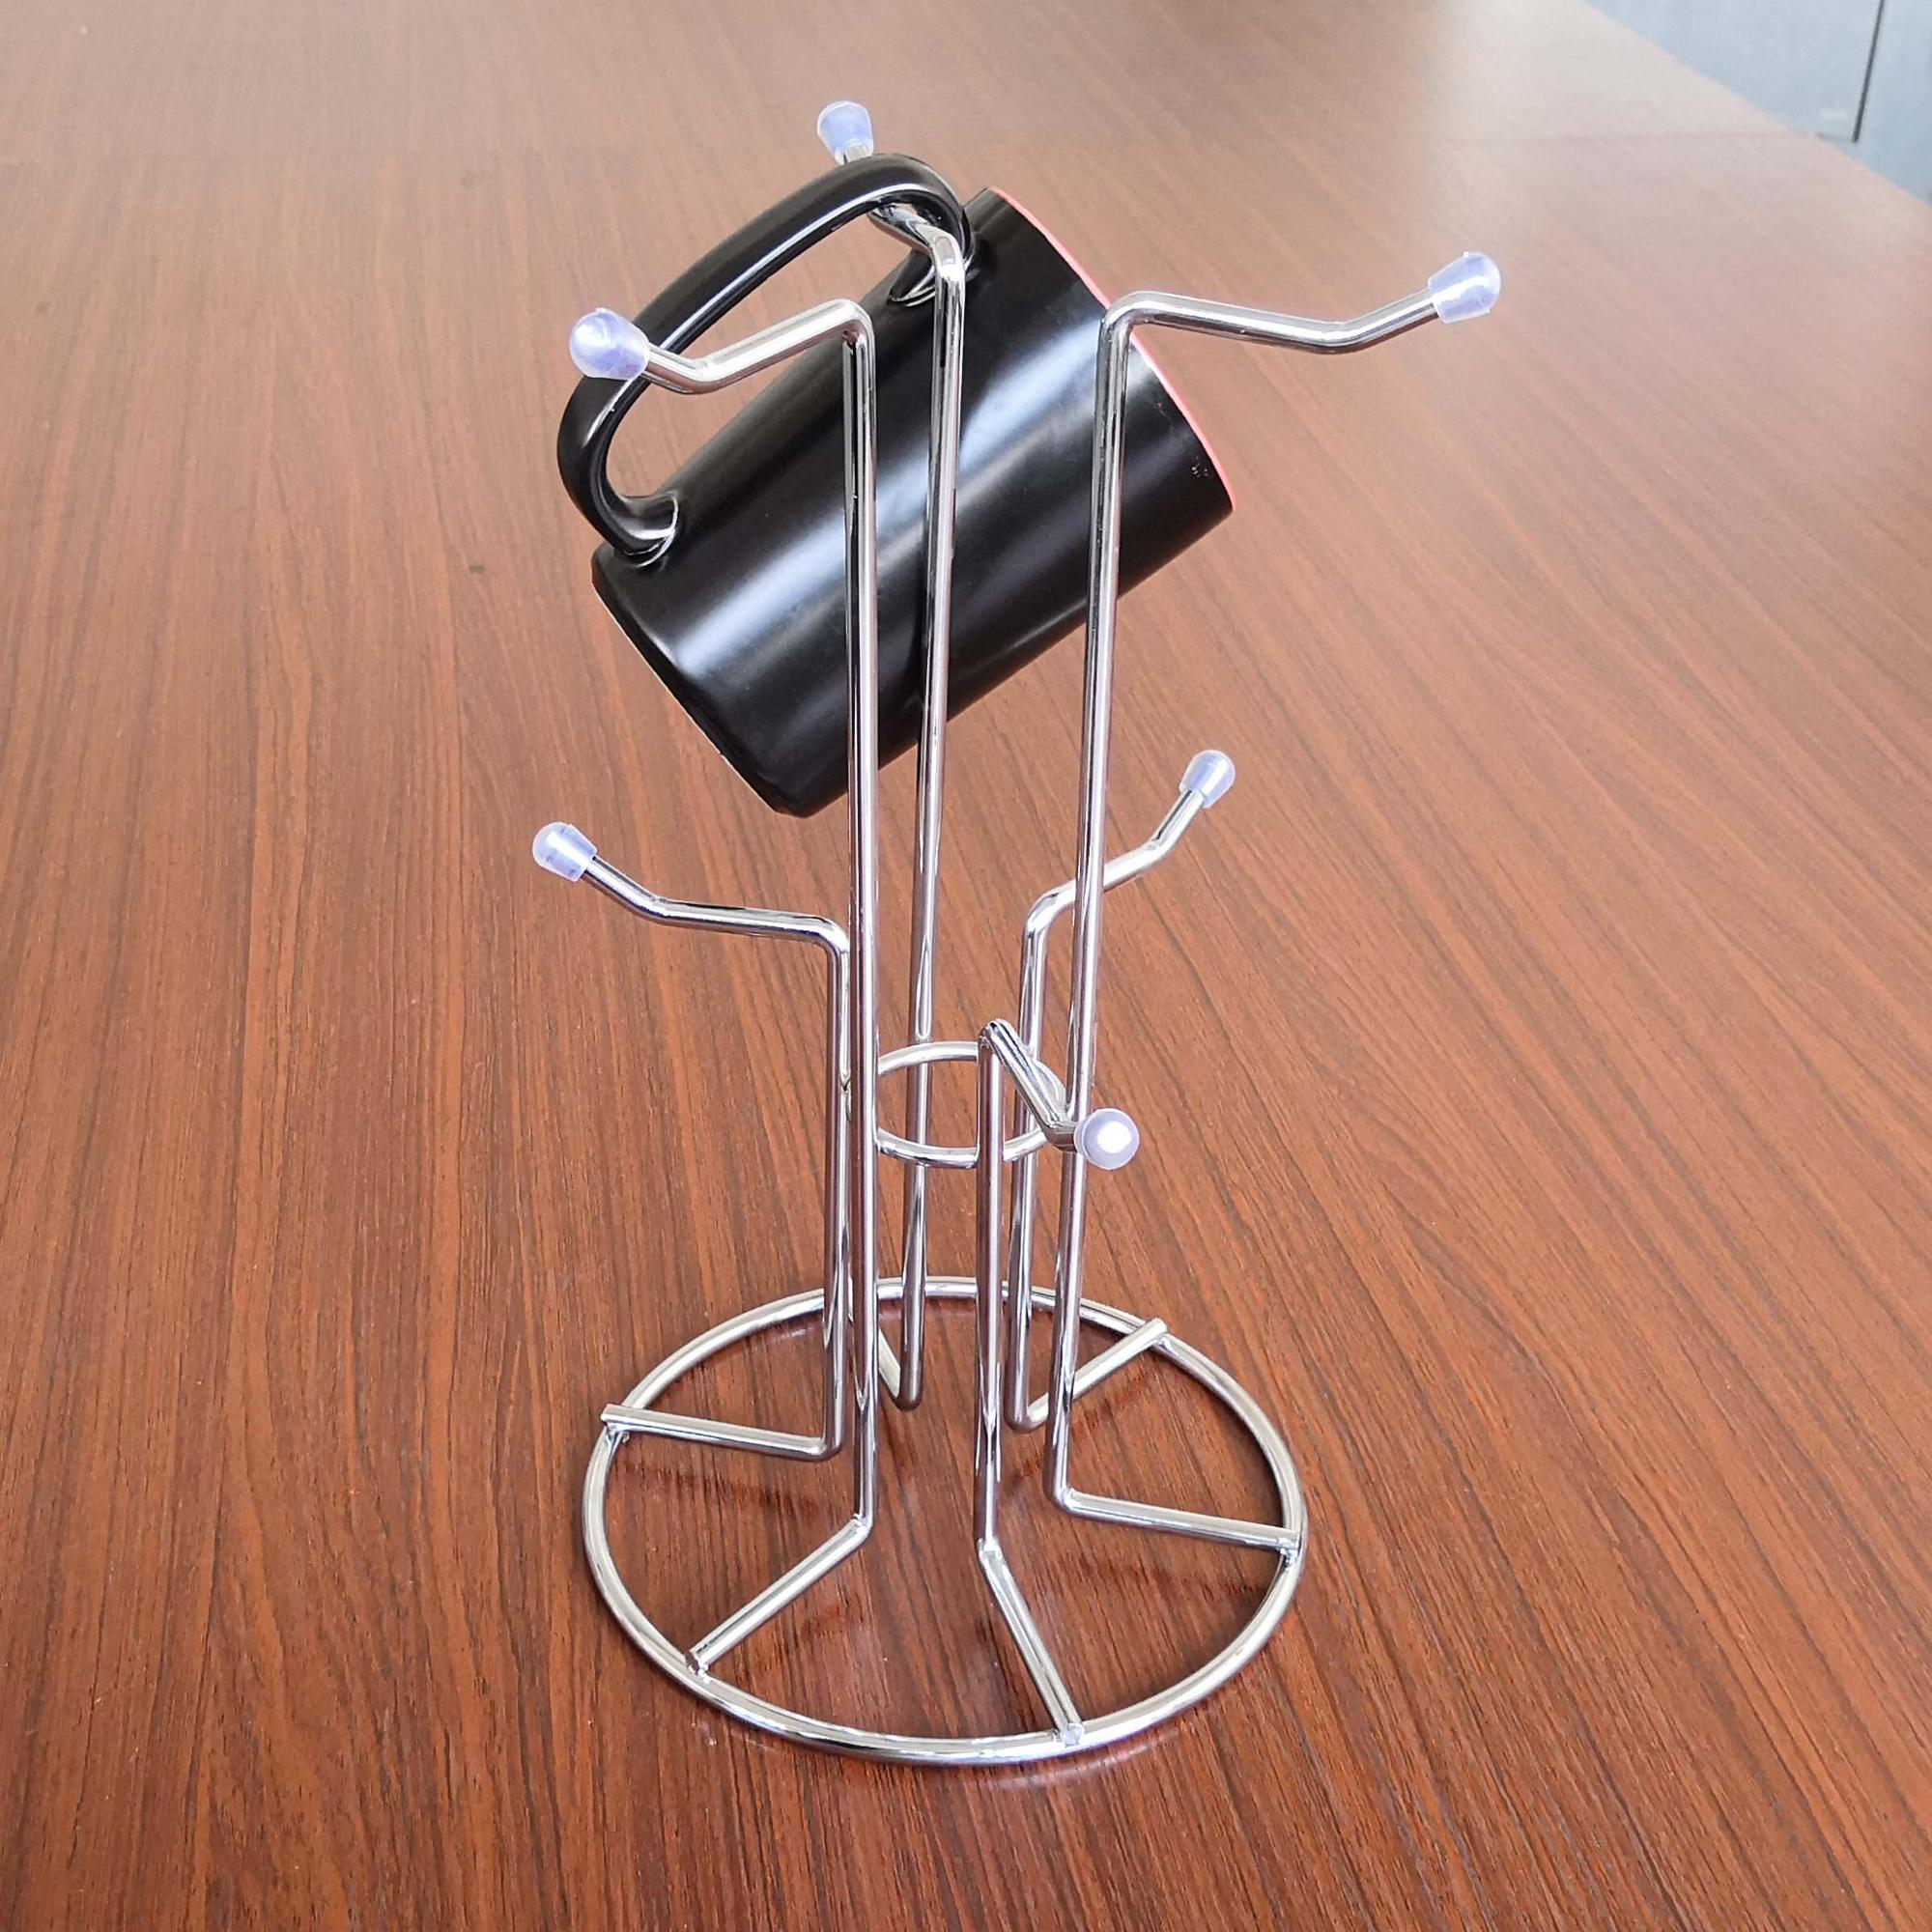 Unique Design Stylish cup handle and mug tree holder Organizer drying rack stand